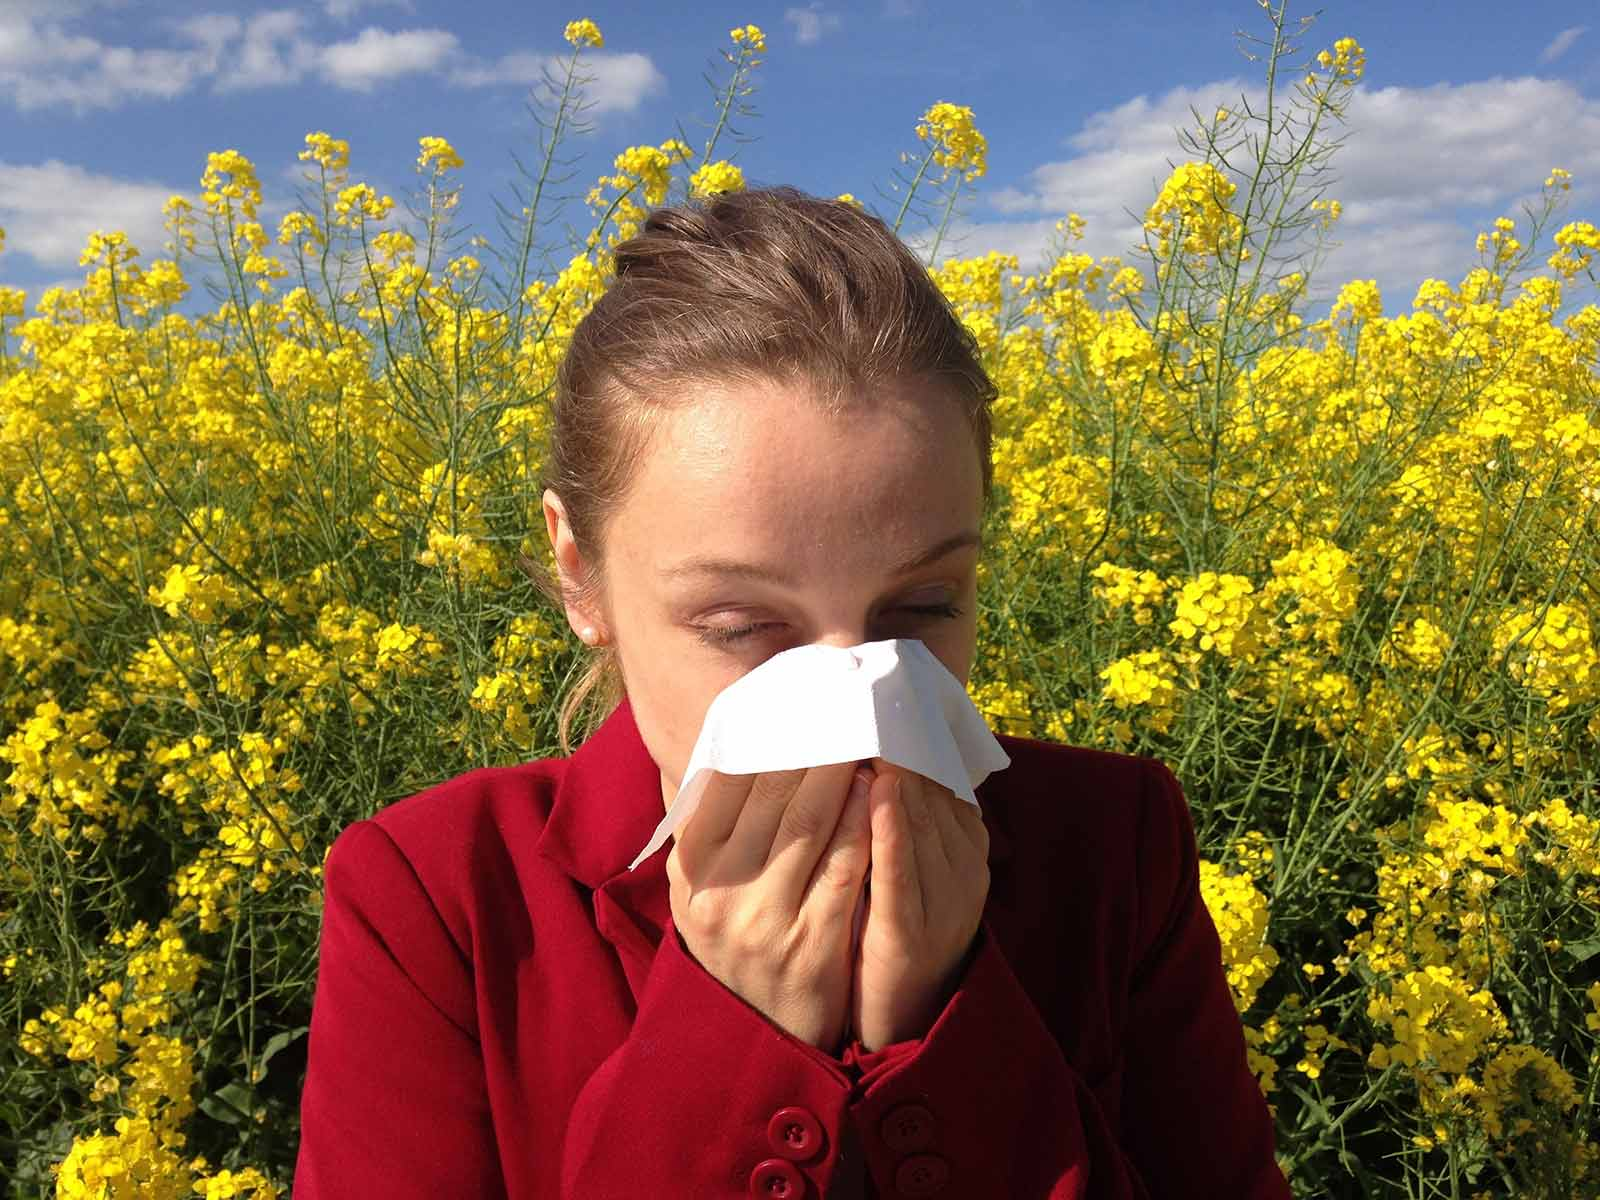 woman sneezing into a tissue with flowers behind her